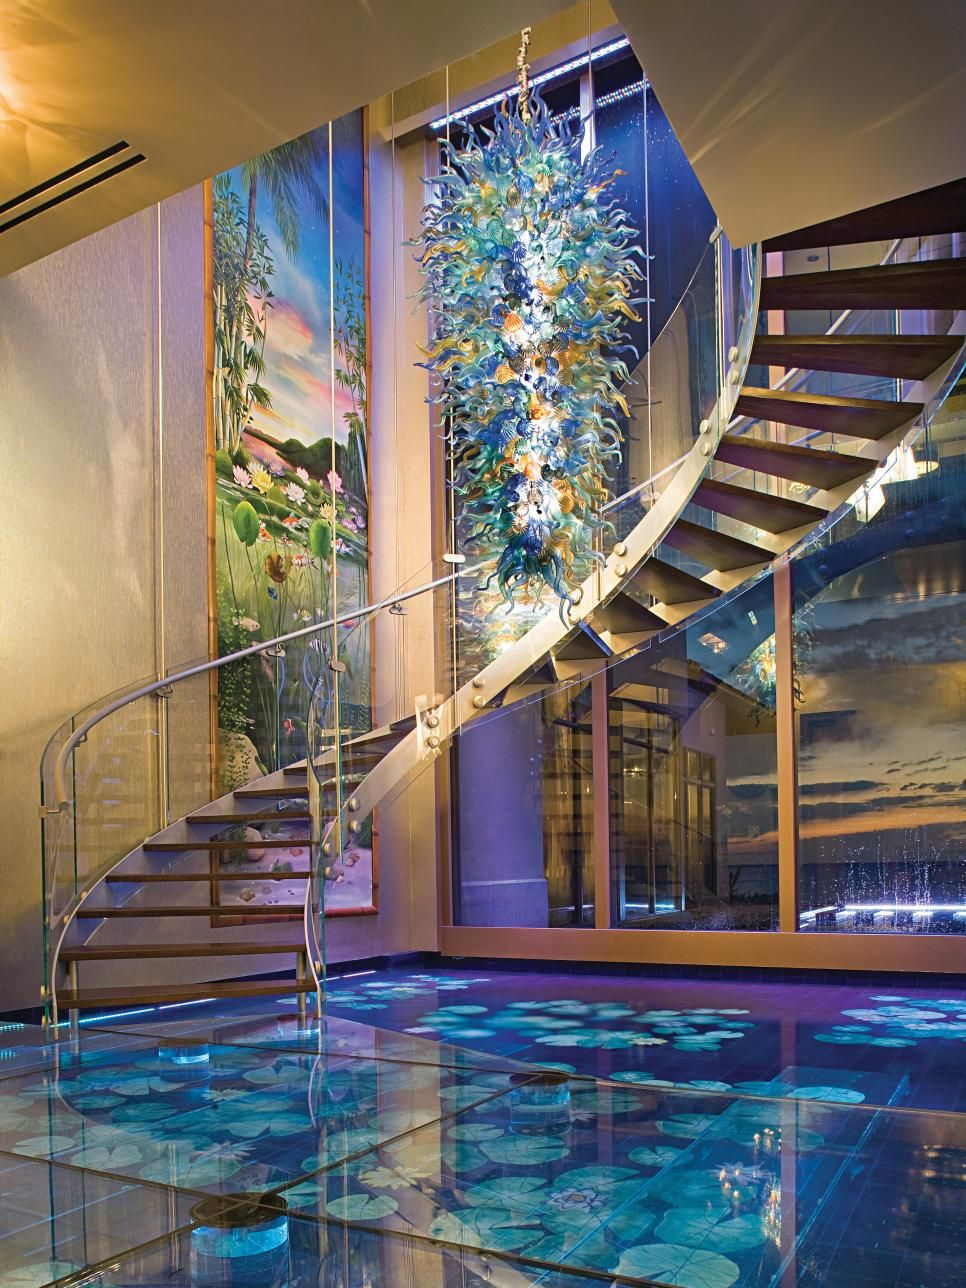 Distinctive features of Acqua Liana's oneofakind foyer